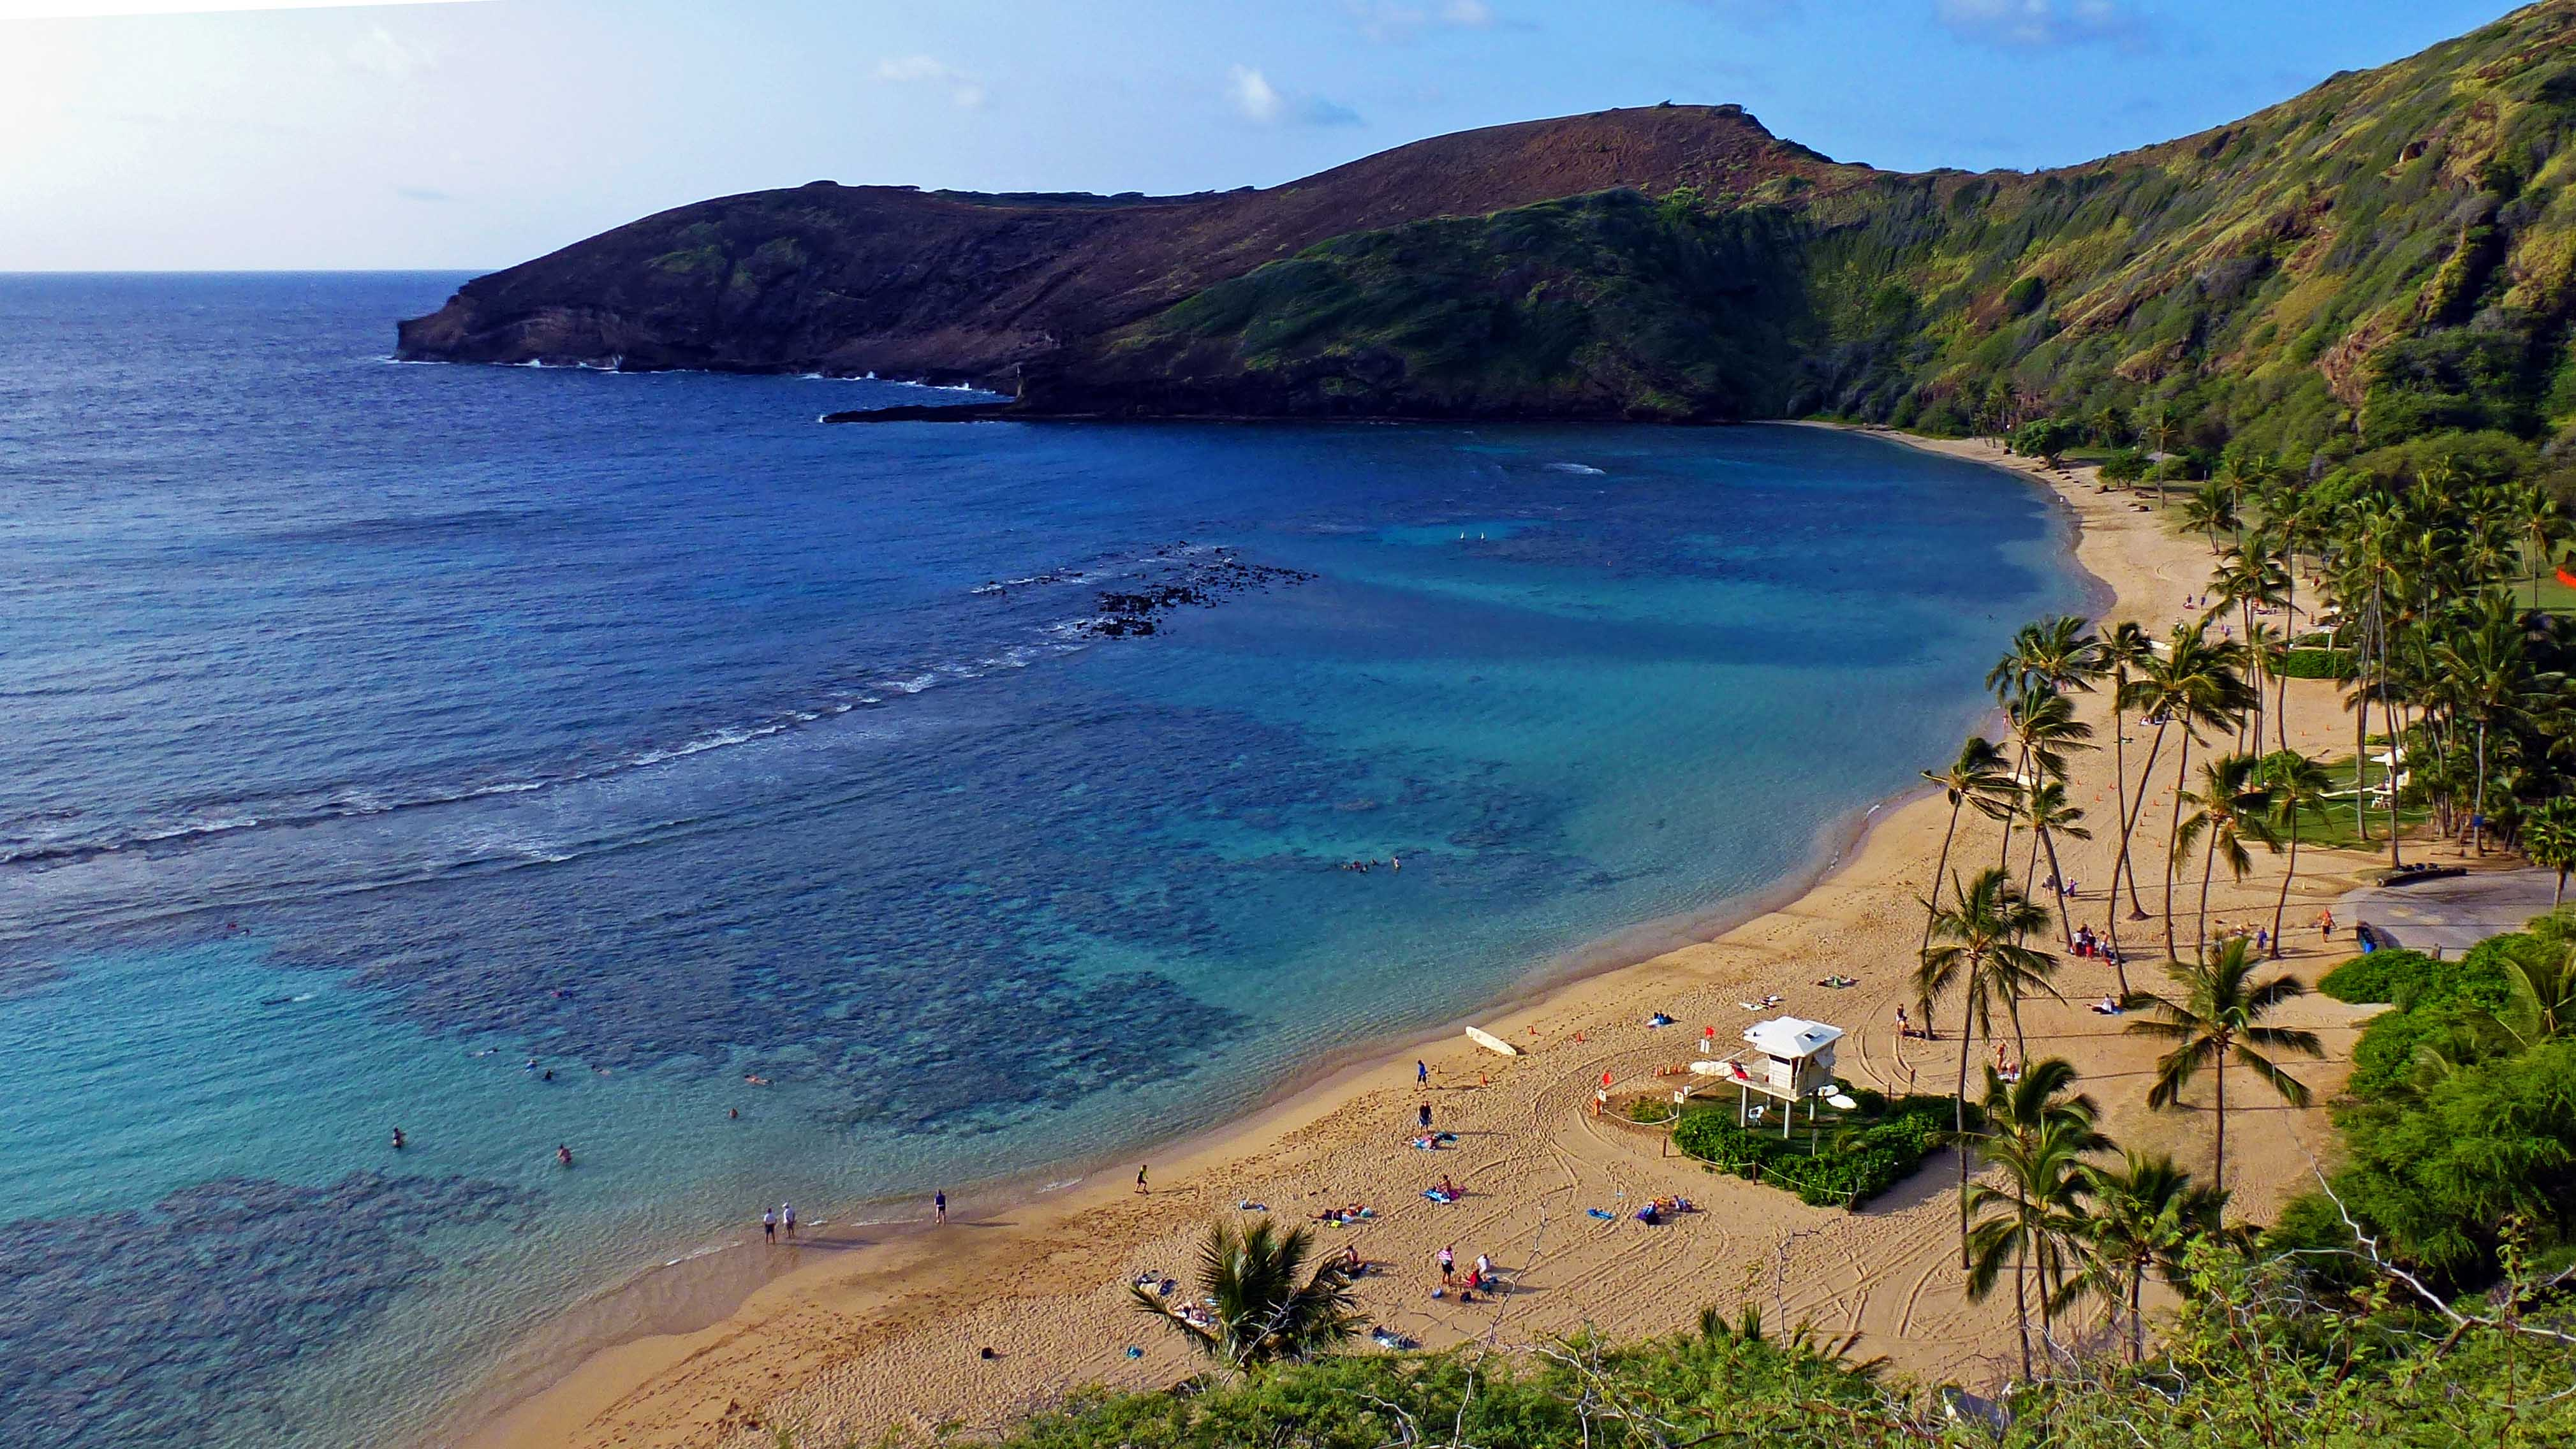 Hanauma Bay, the best beach in the USA